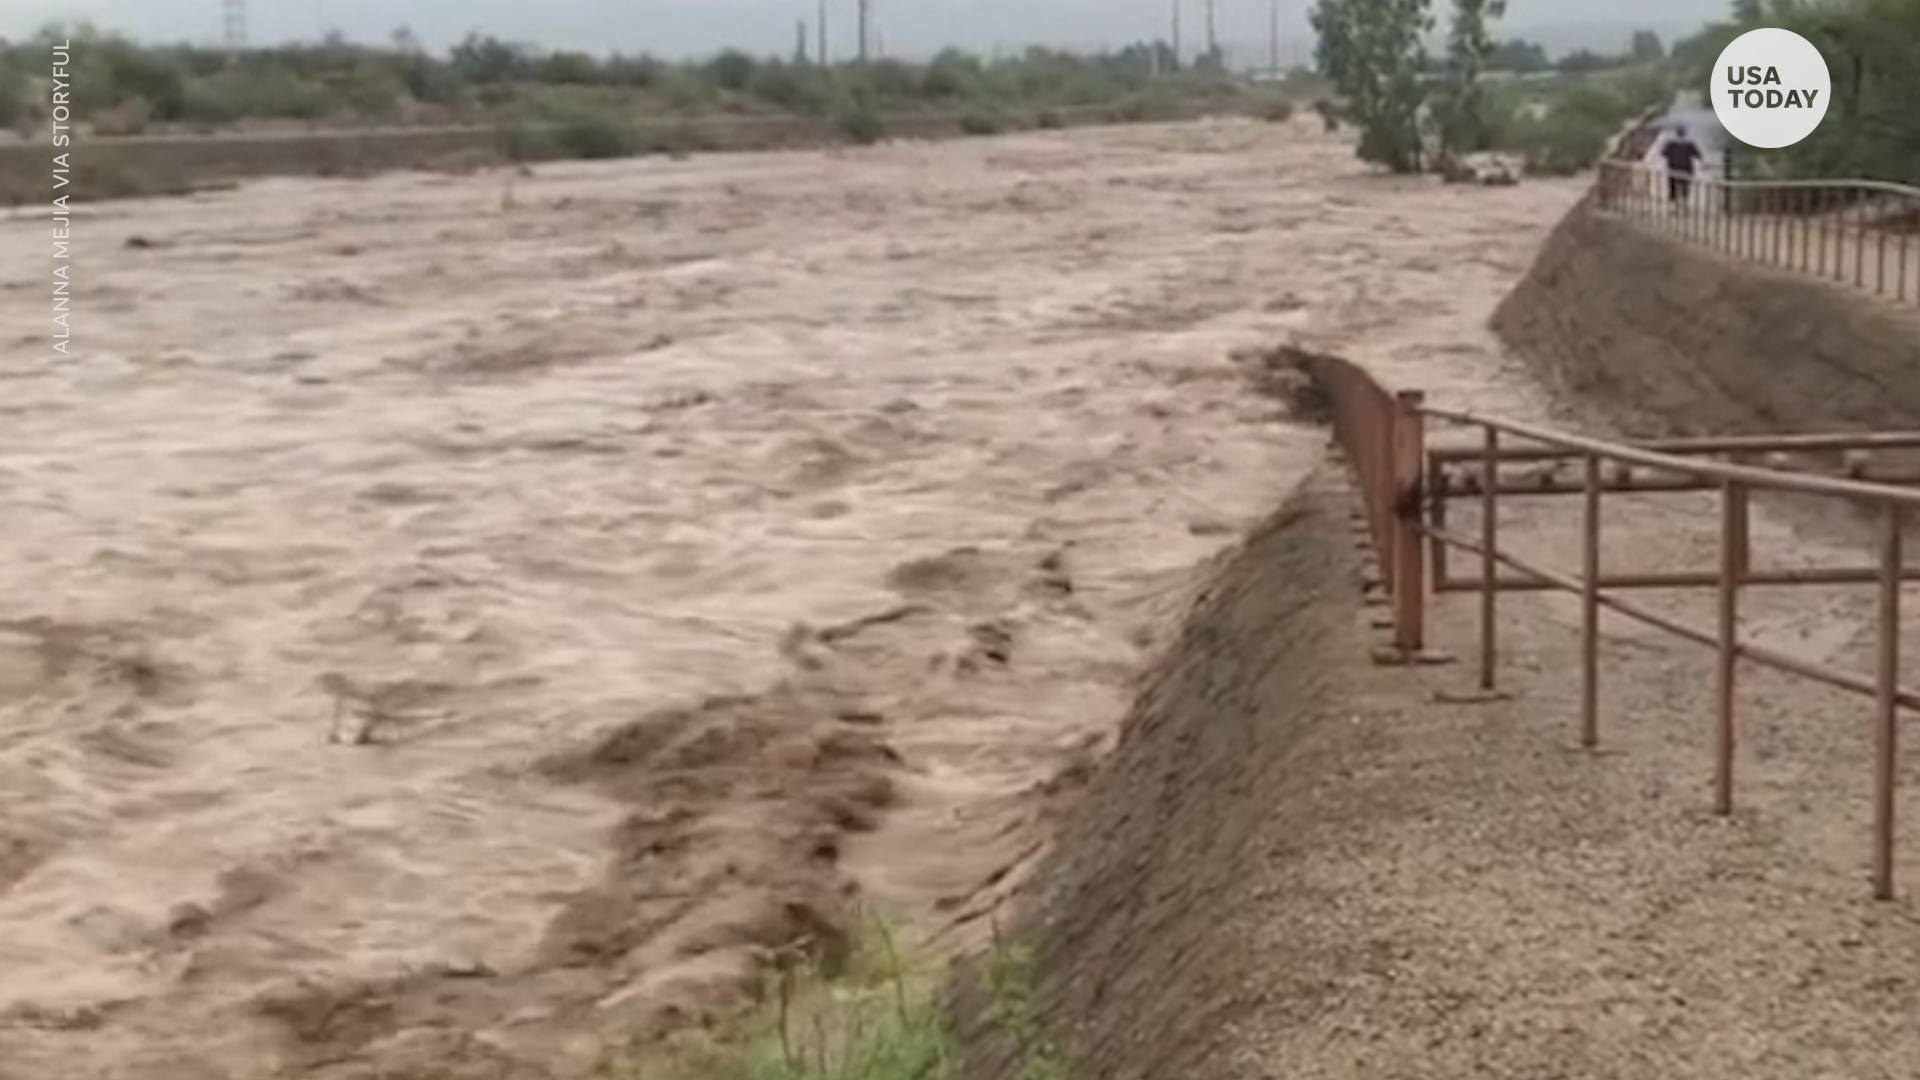 Southwest monsoon brings drought relief for Arizona but also dangerous flooding